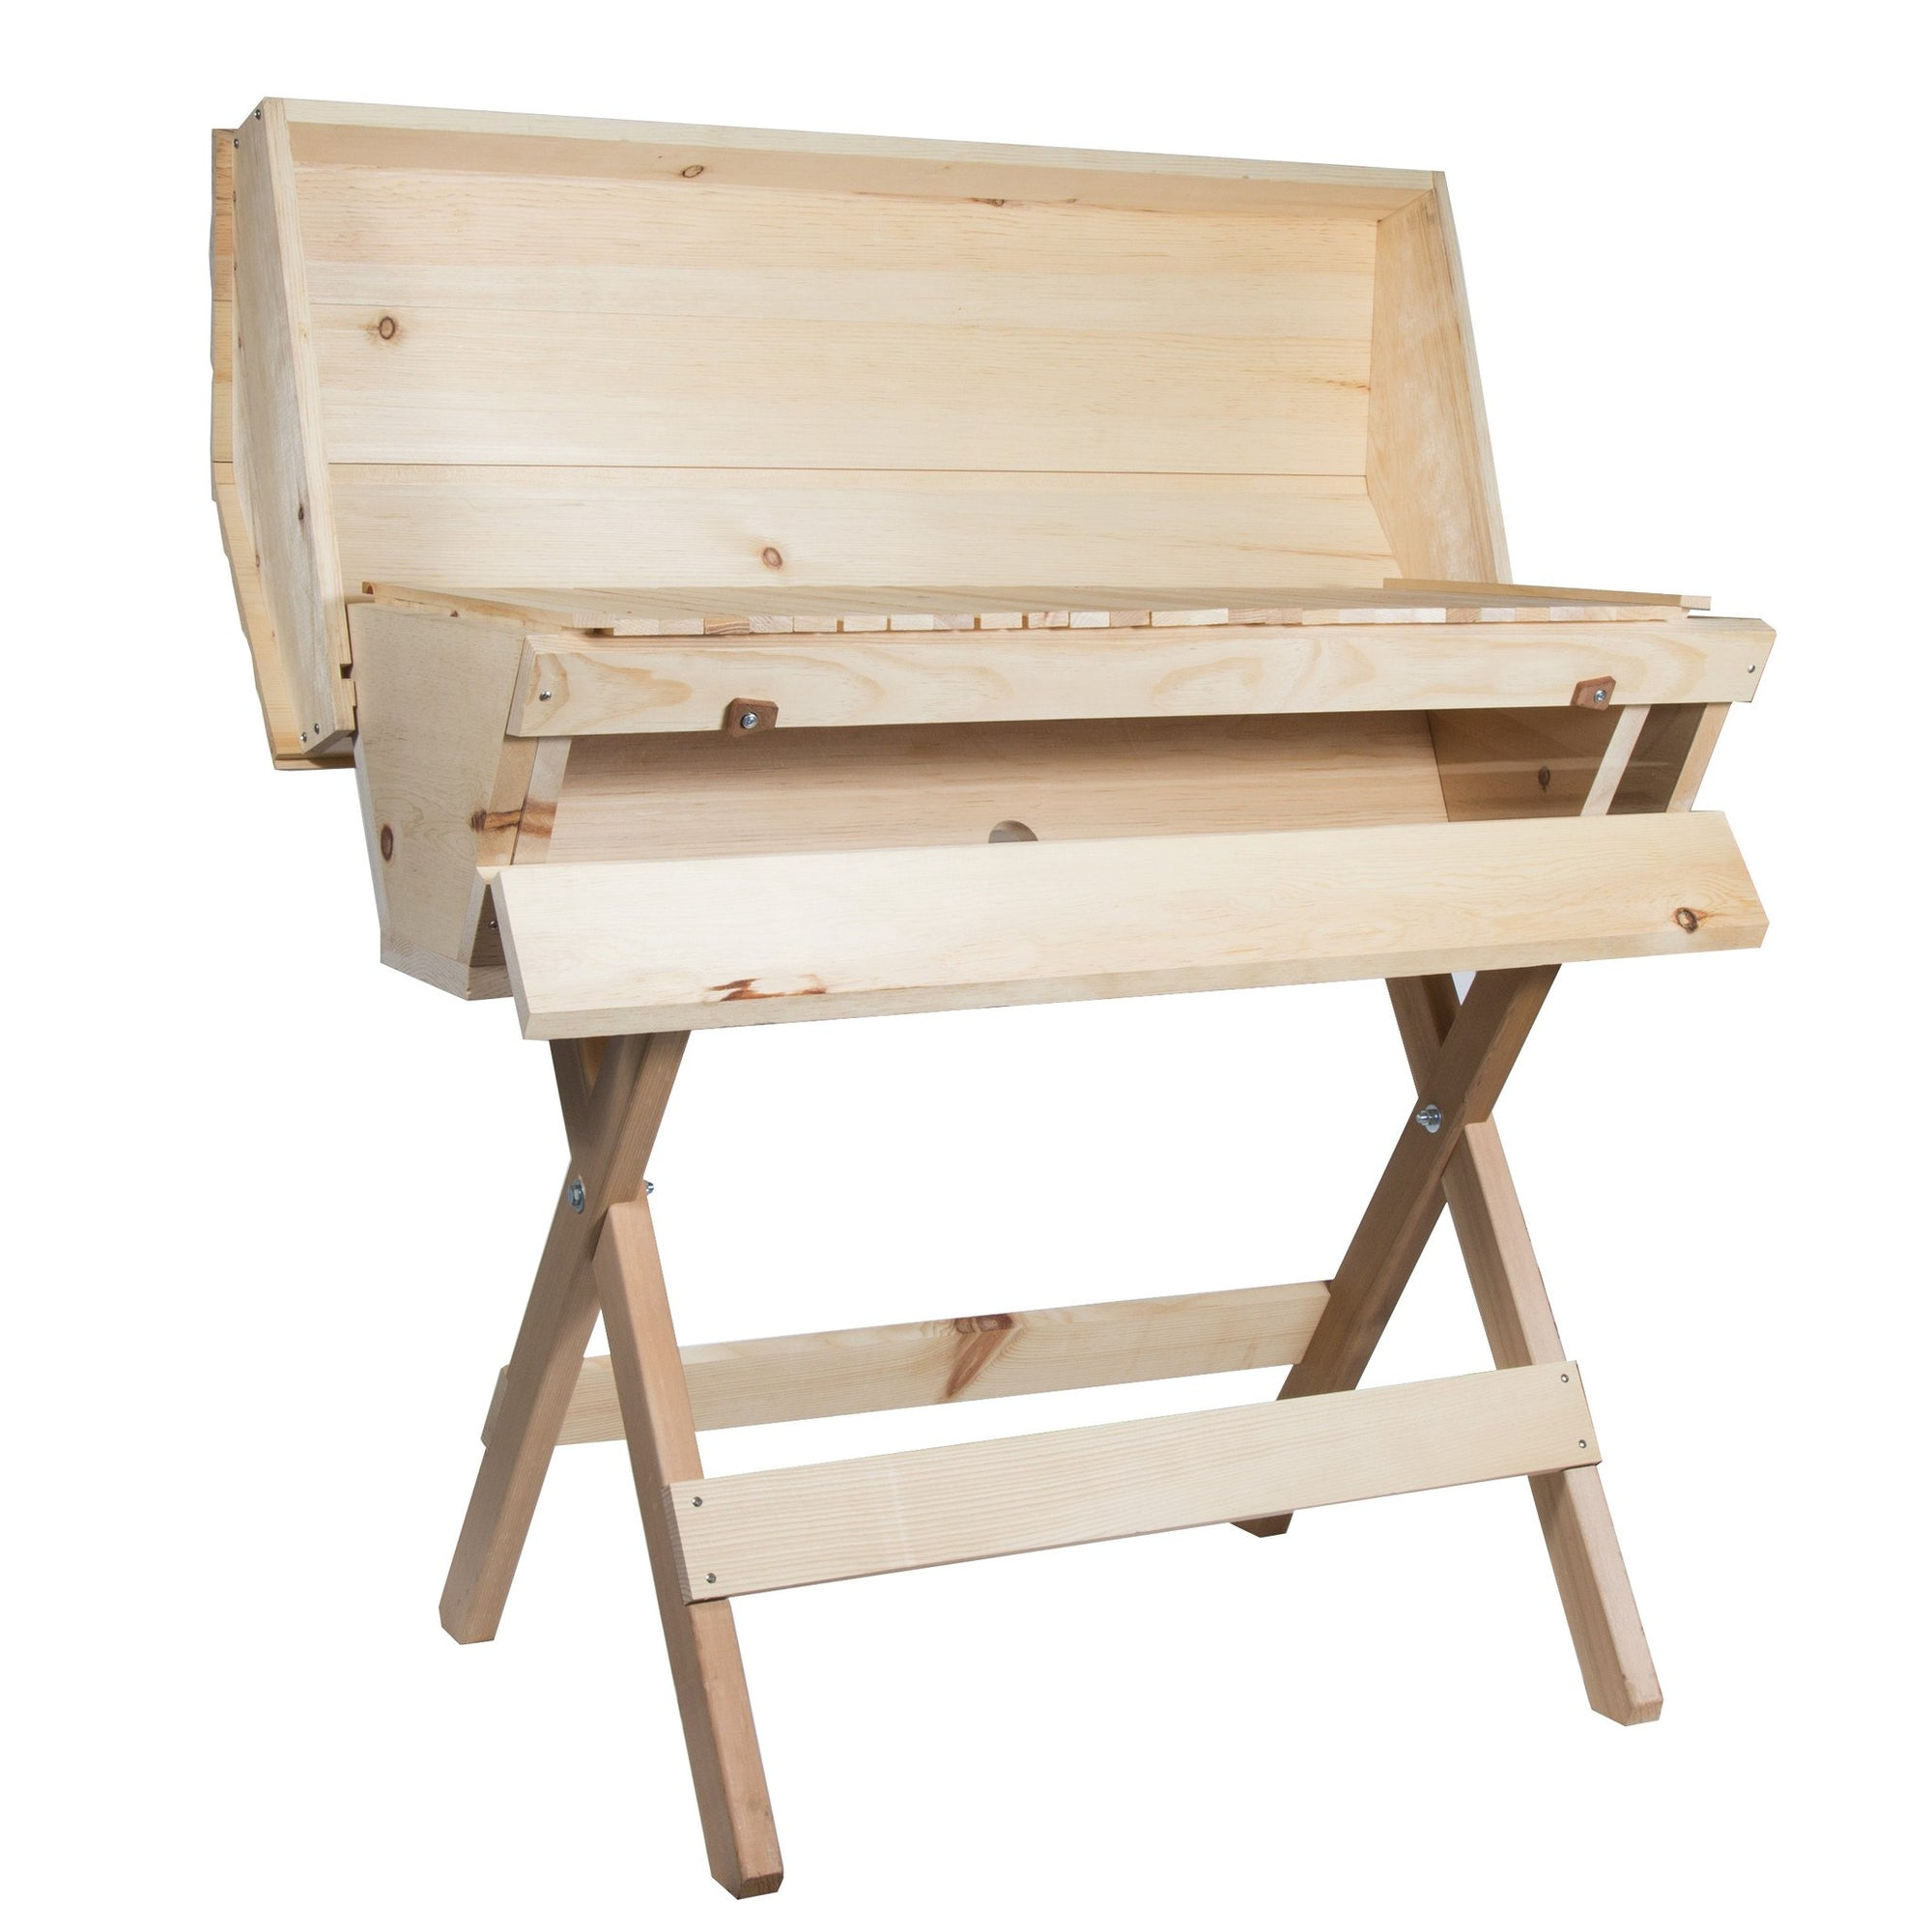 Top Bar Hive for Sale - Sugar Pine - Bee Thinking